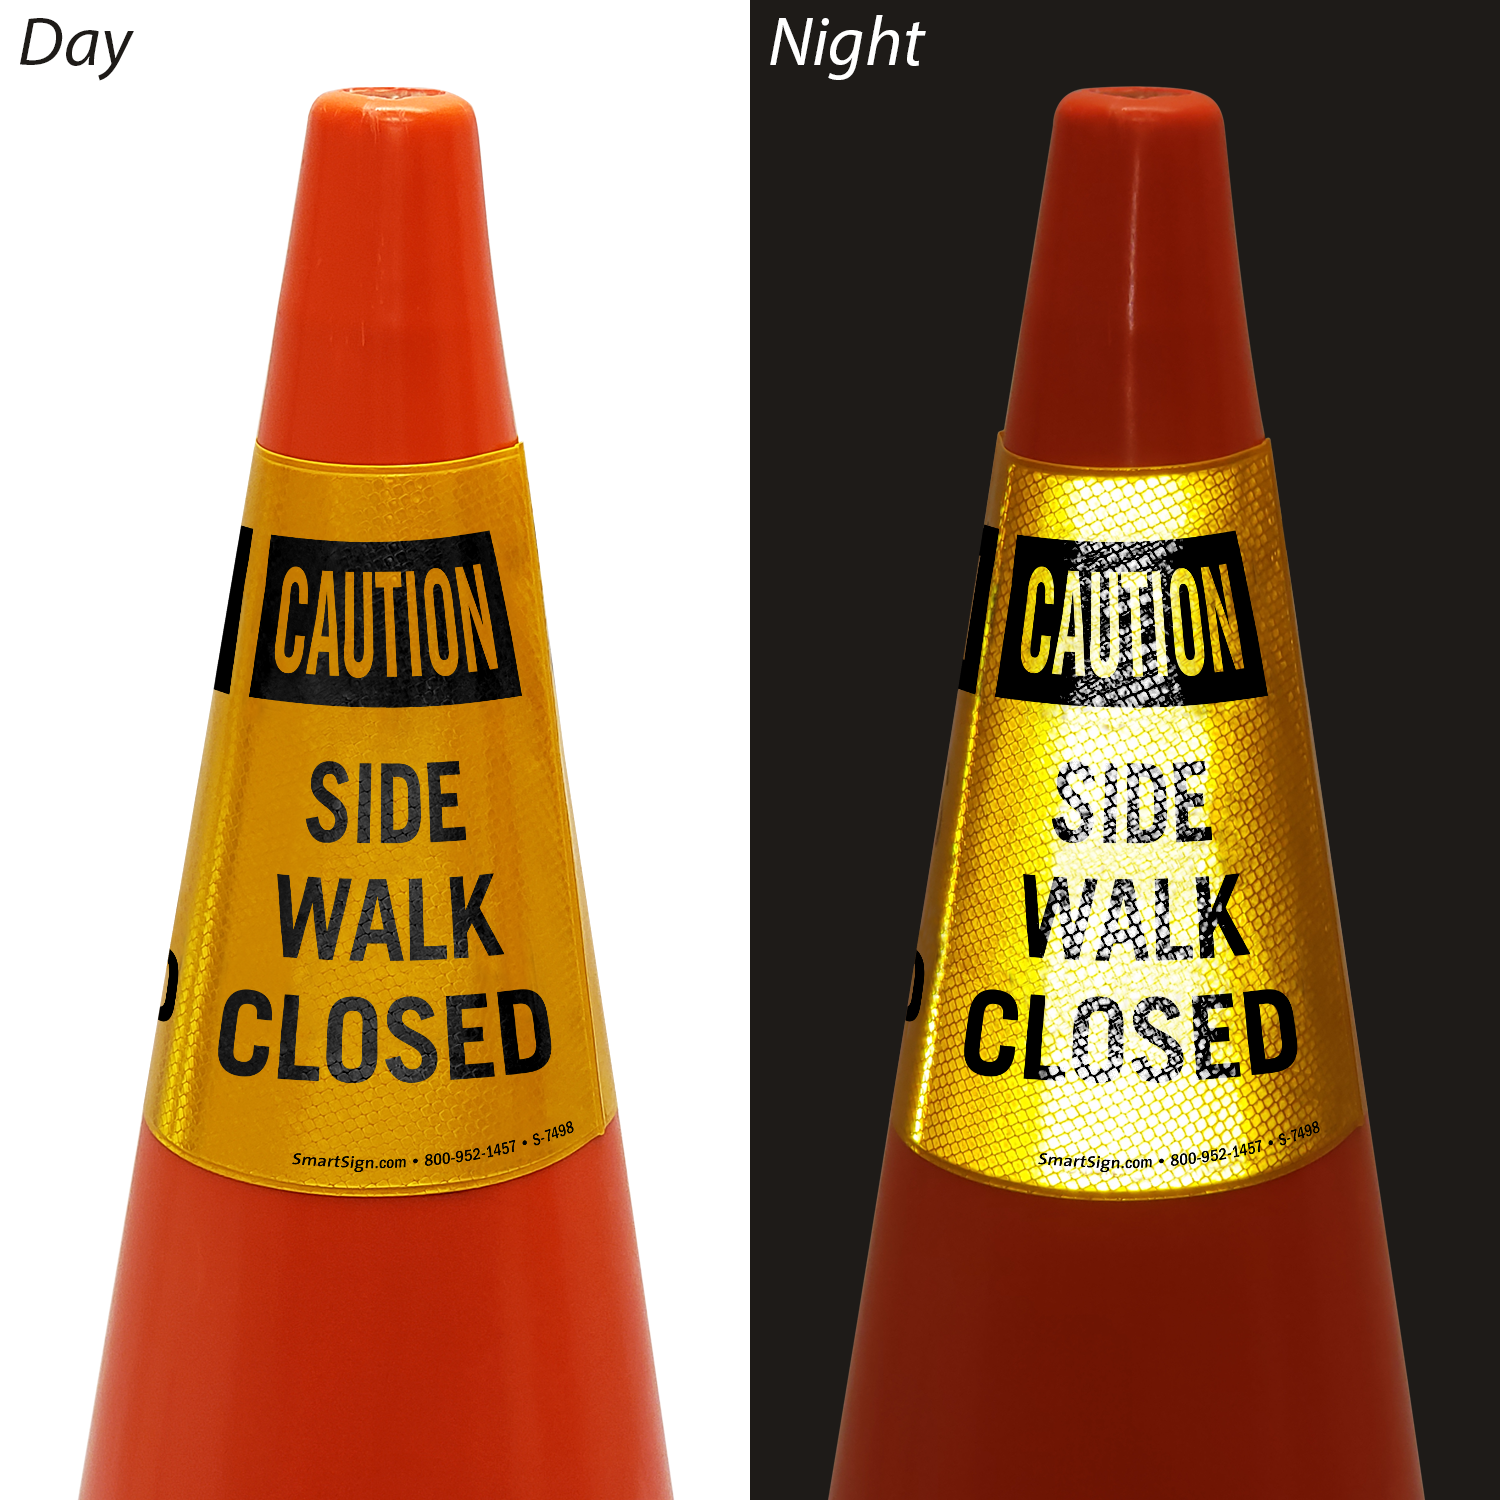 Caution Side Walk Closed Cone Message Collar Signs Sku S